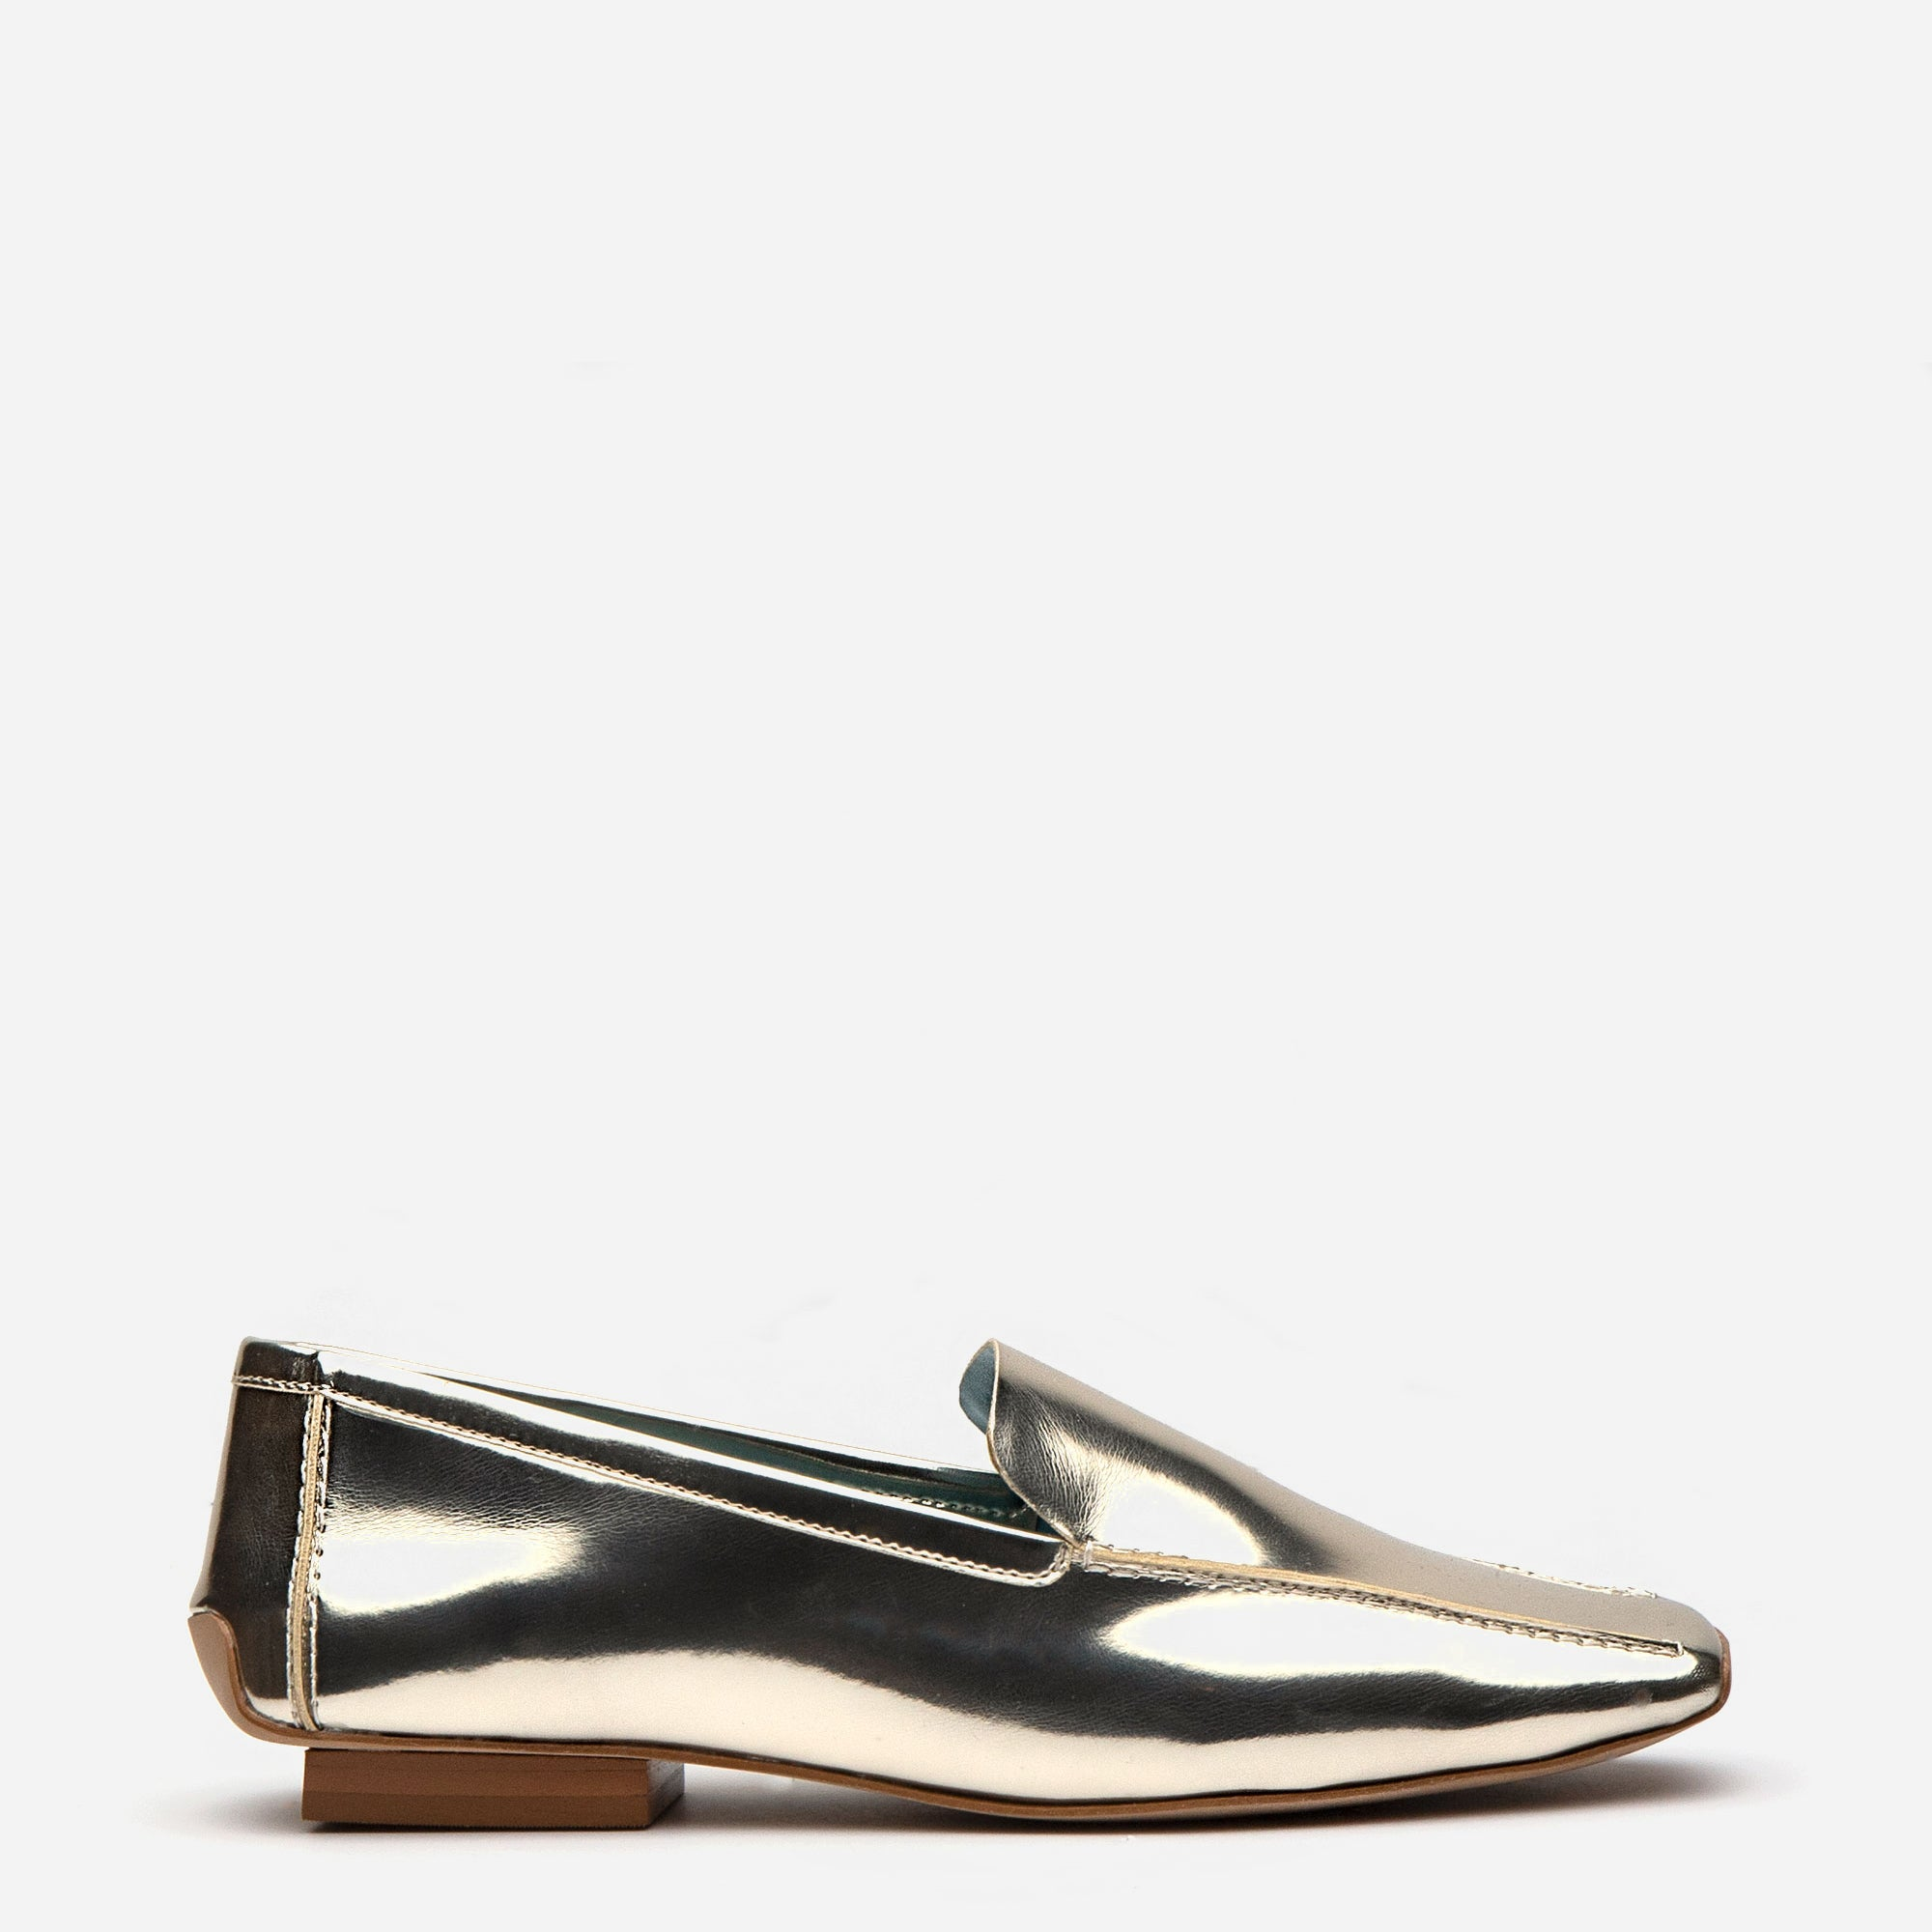 Elyce Loafer Metallic Vegan Platino *FINAL SALE* - Frances Valentine